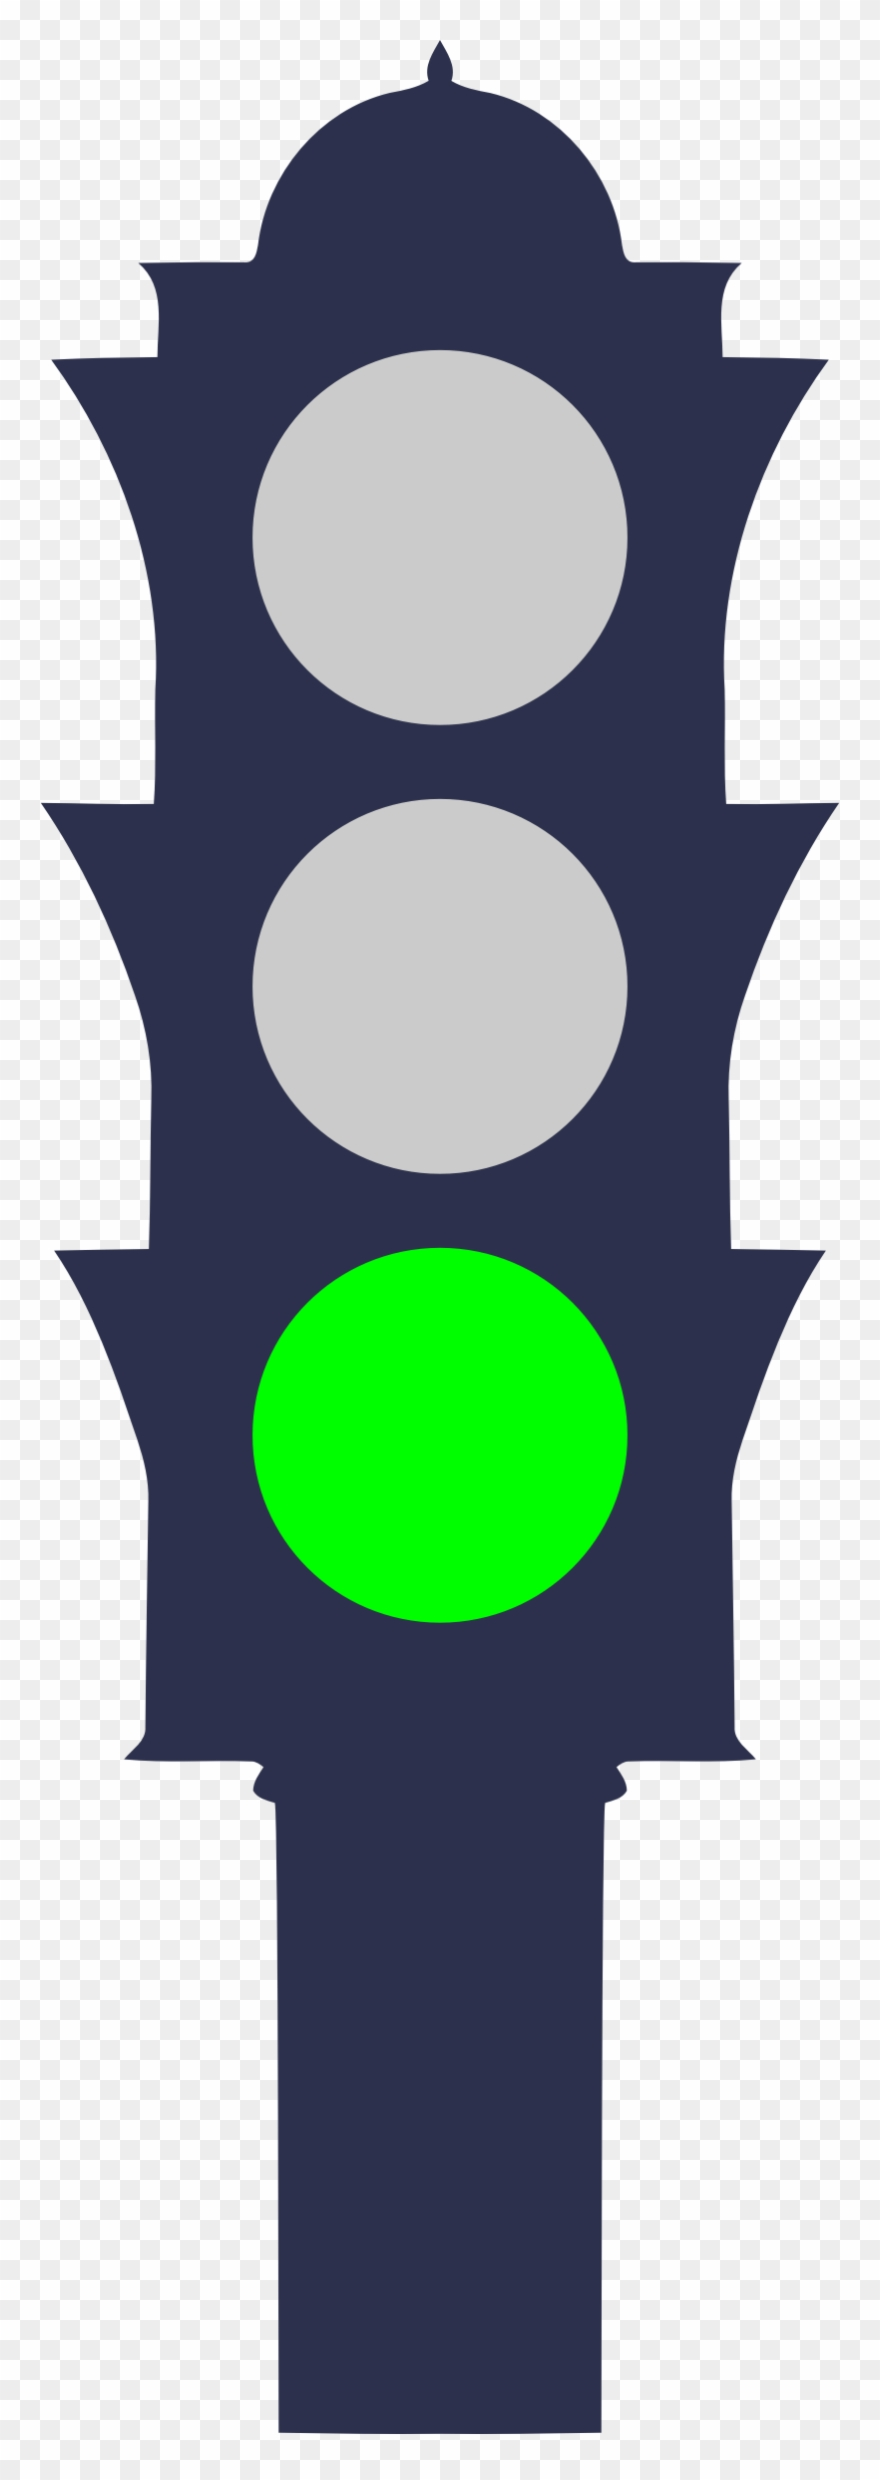 Traffic Light Icon Clipart.